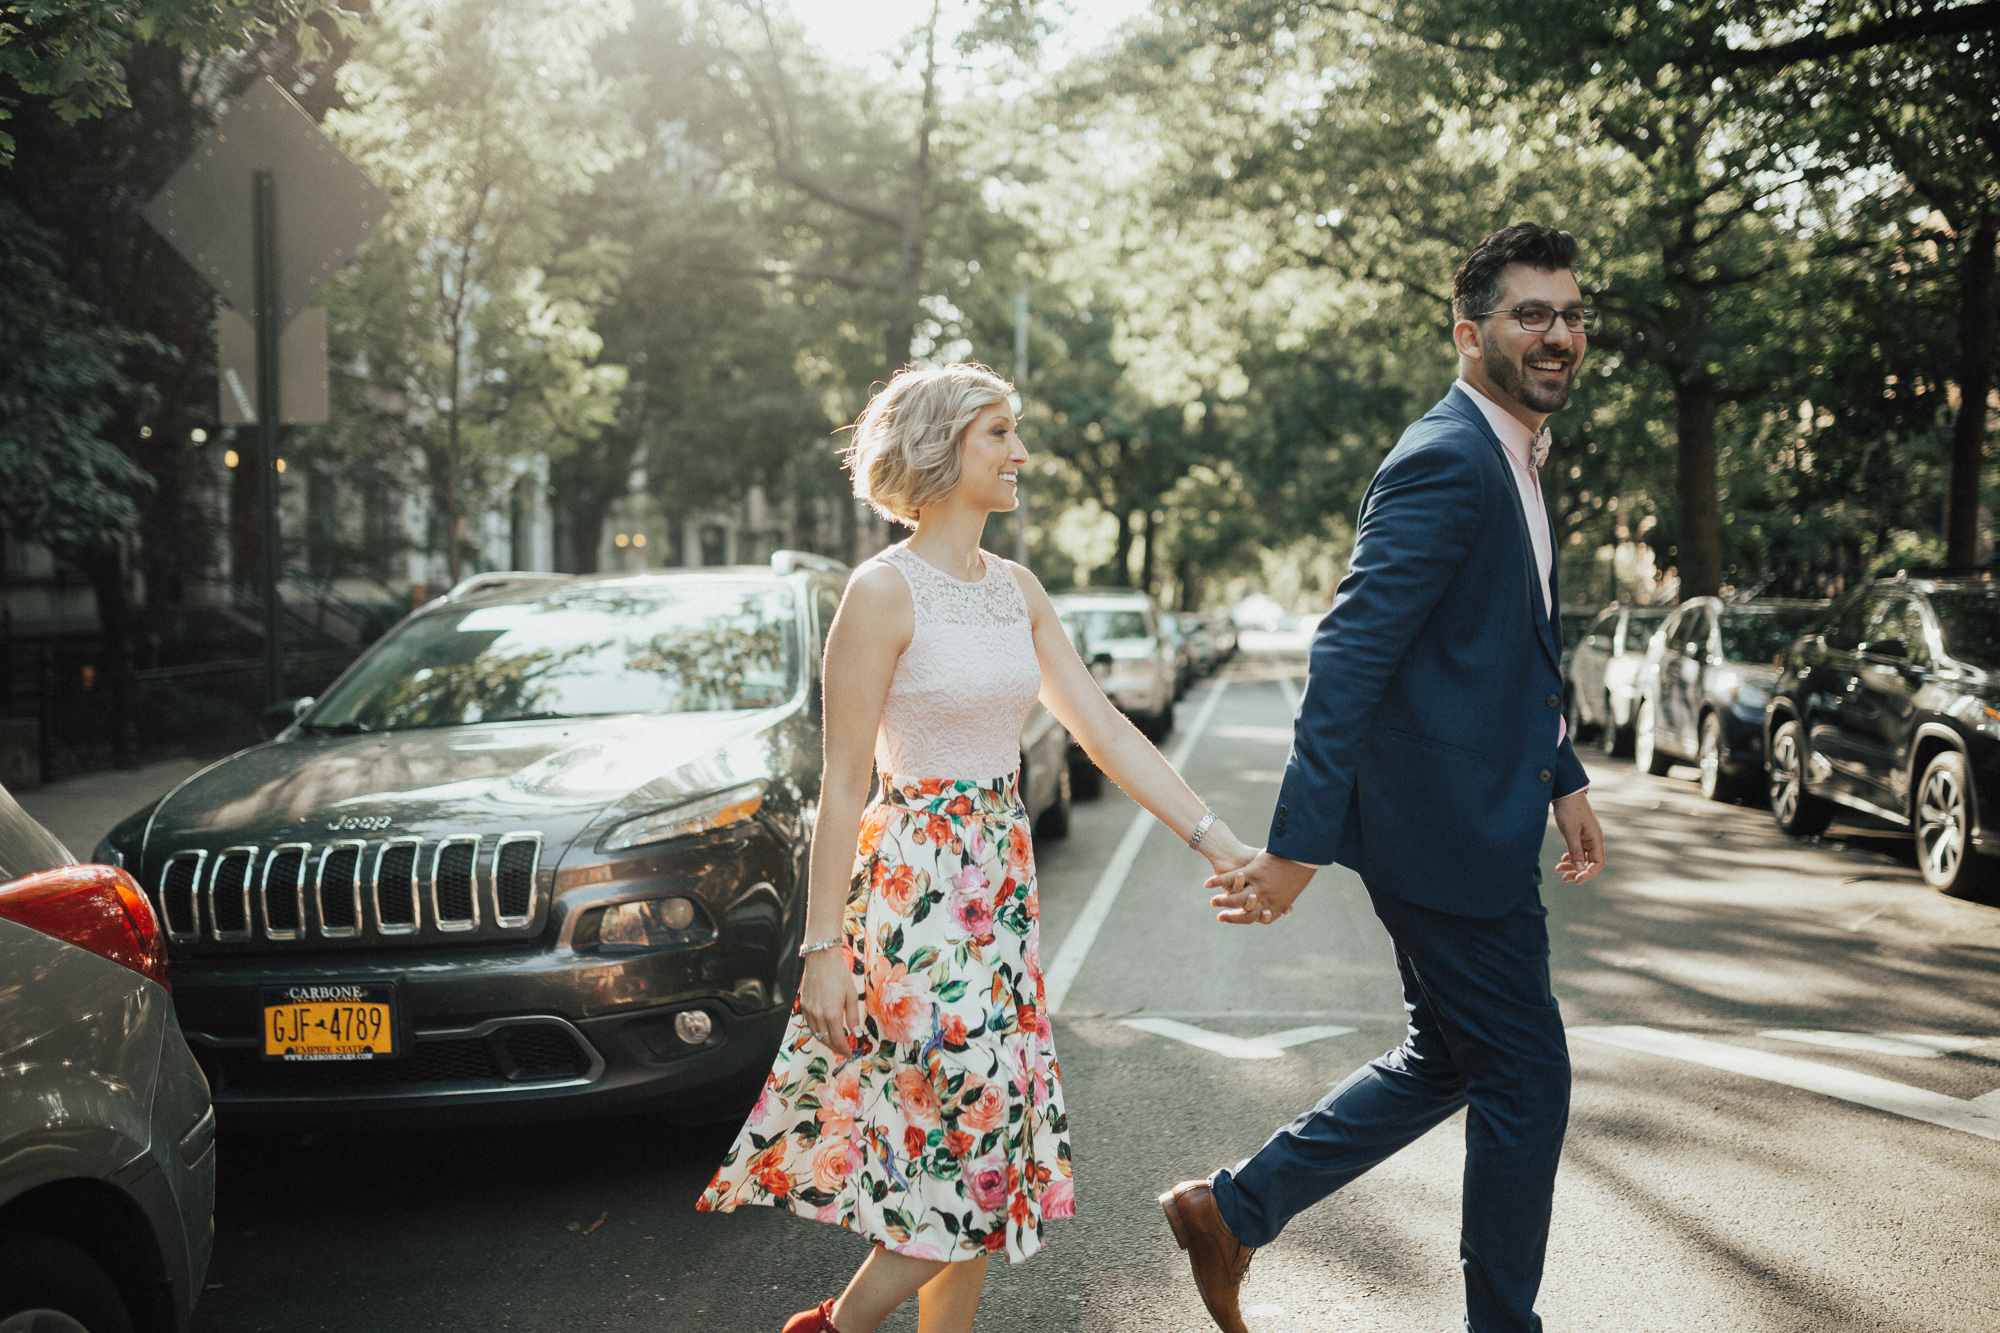 brooklyn_nyc_engagement_photography-10-of-83.jpg